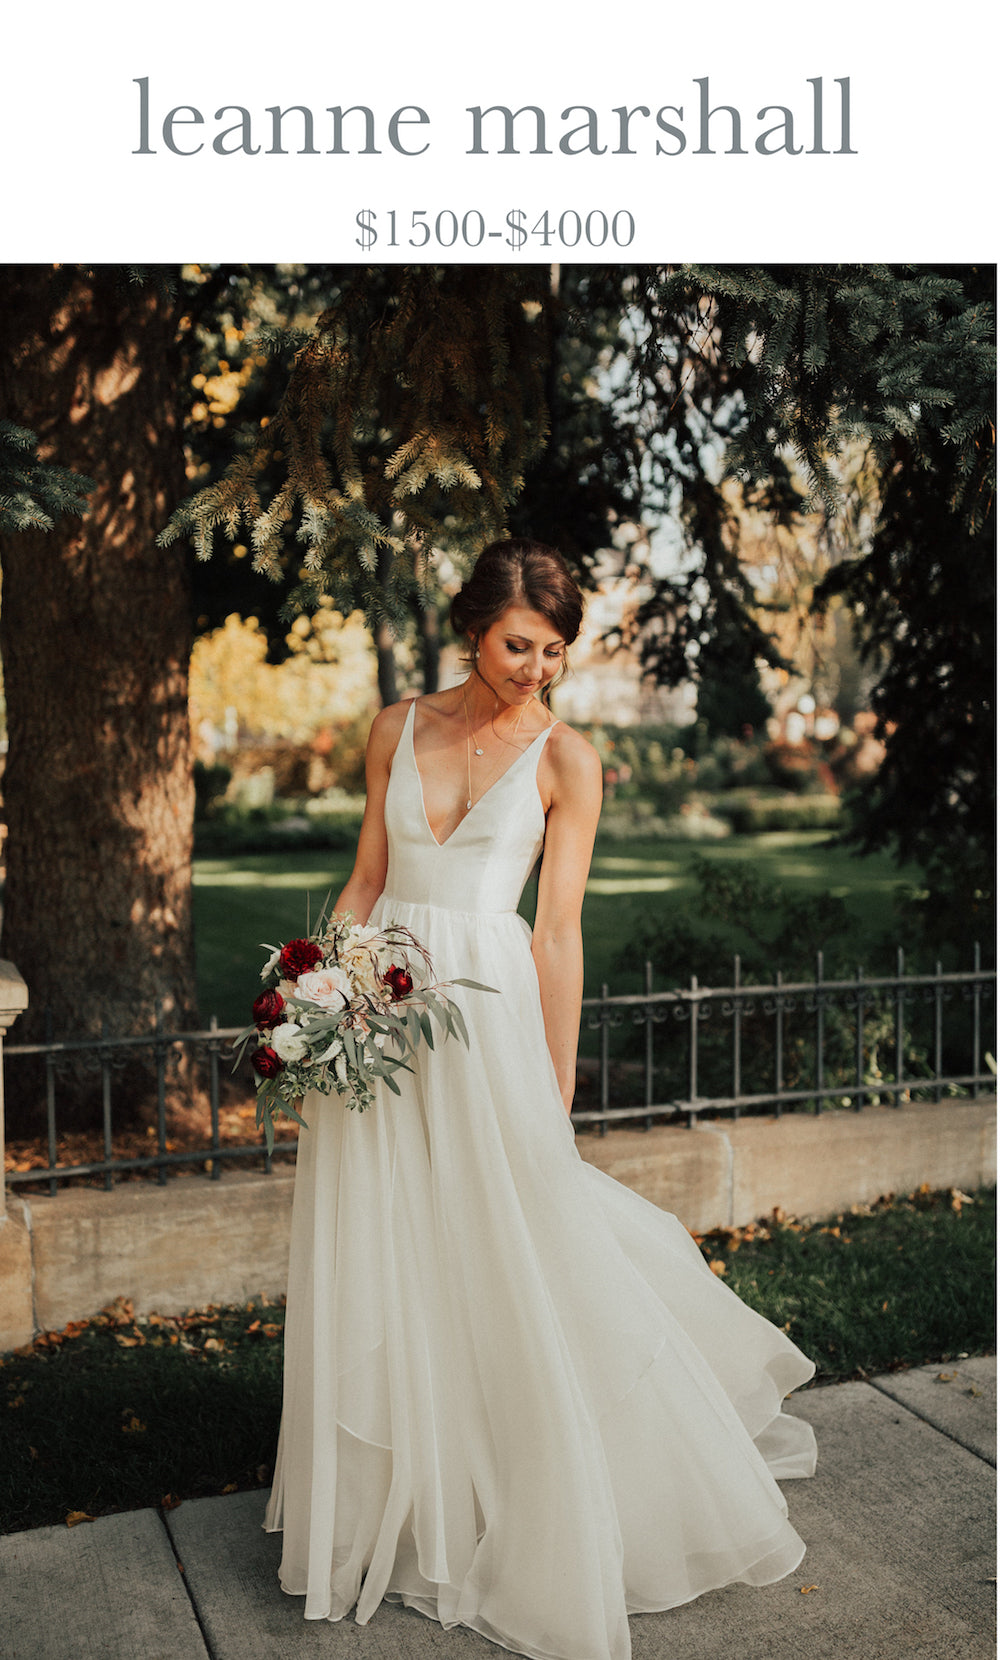 leanne marshall wedding dress store